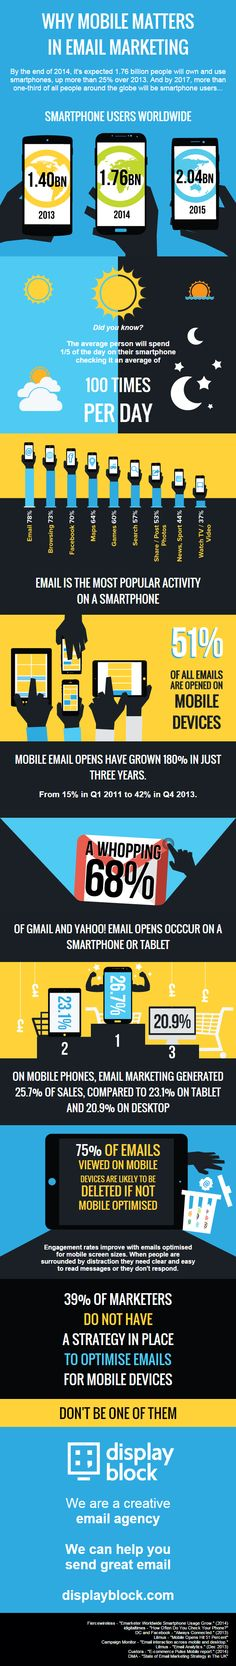 """While I was doing my daily #Web trawling to keep up with what's trending in our wonderful world of #eMarketing, I came across this fabulous #infographic by display block, titled """"Why #mobile matters in eMarketing"""" Check it out! –  Ed"""